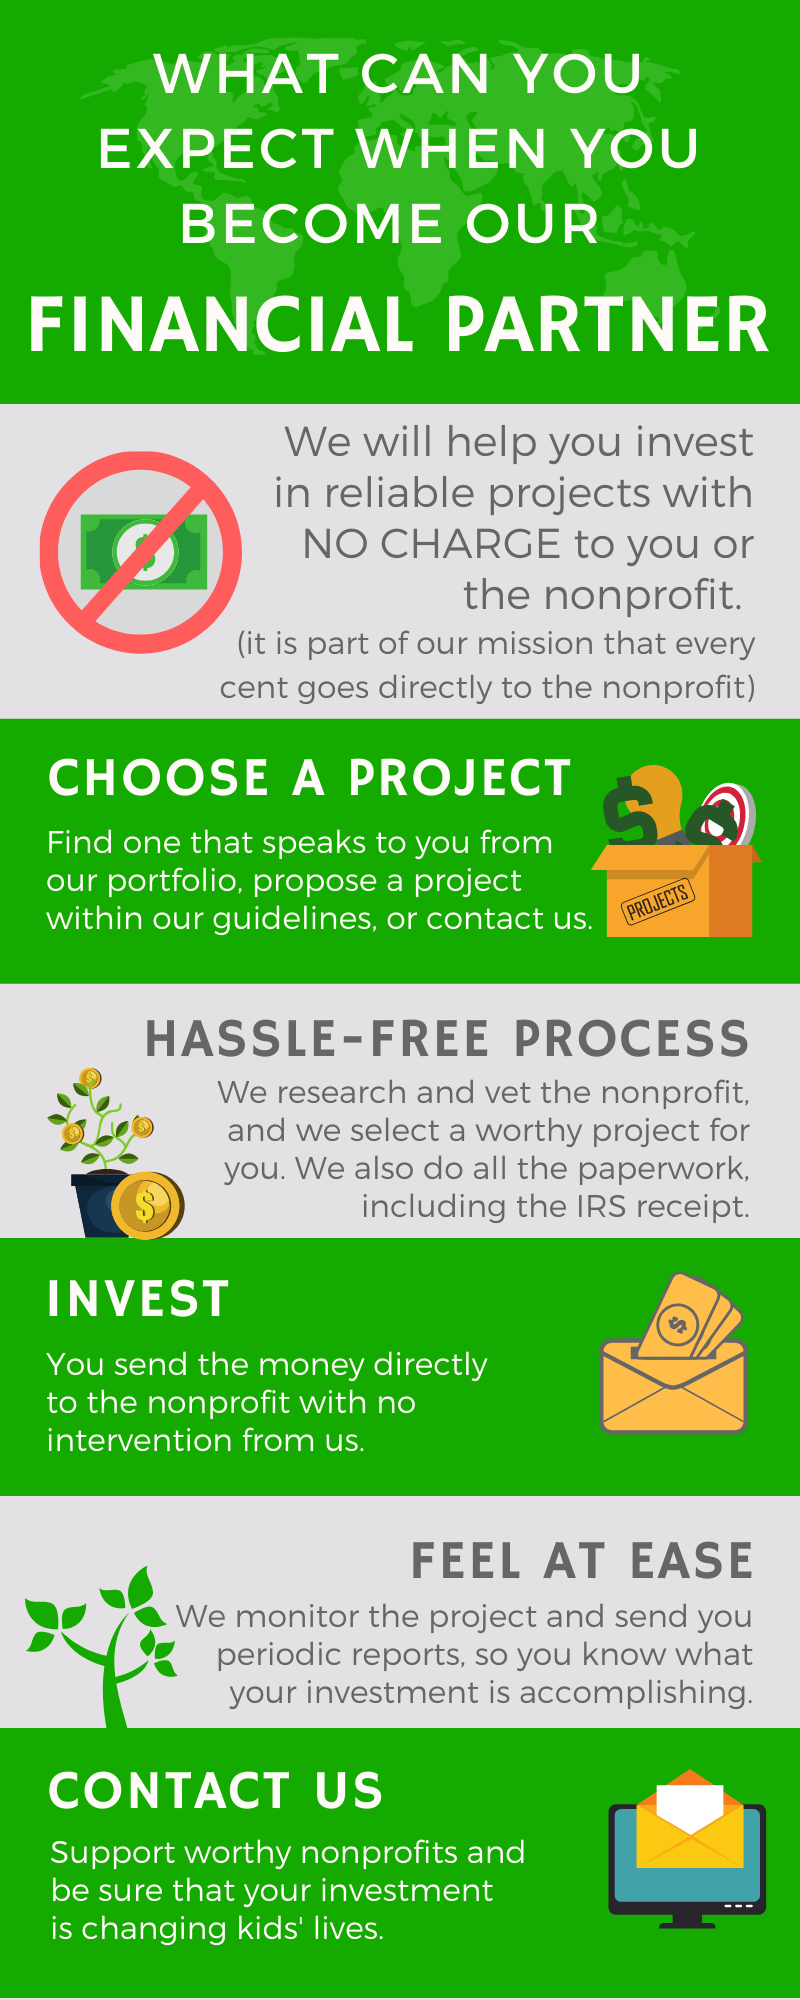 Benefits of becoming our financial partner